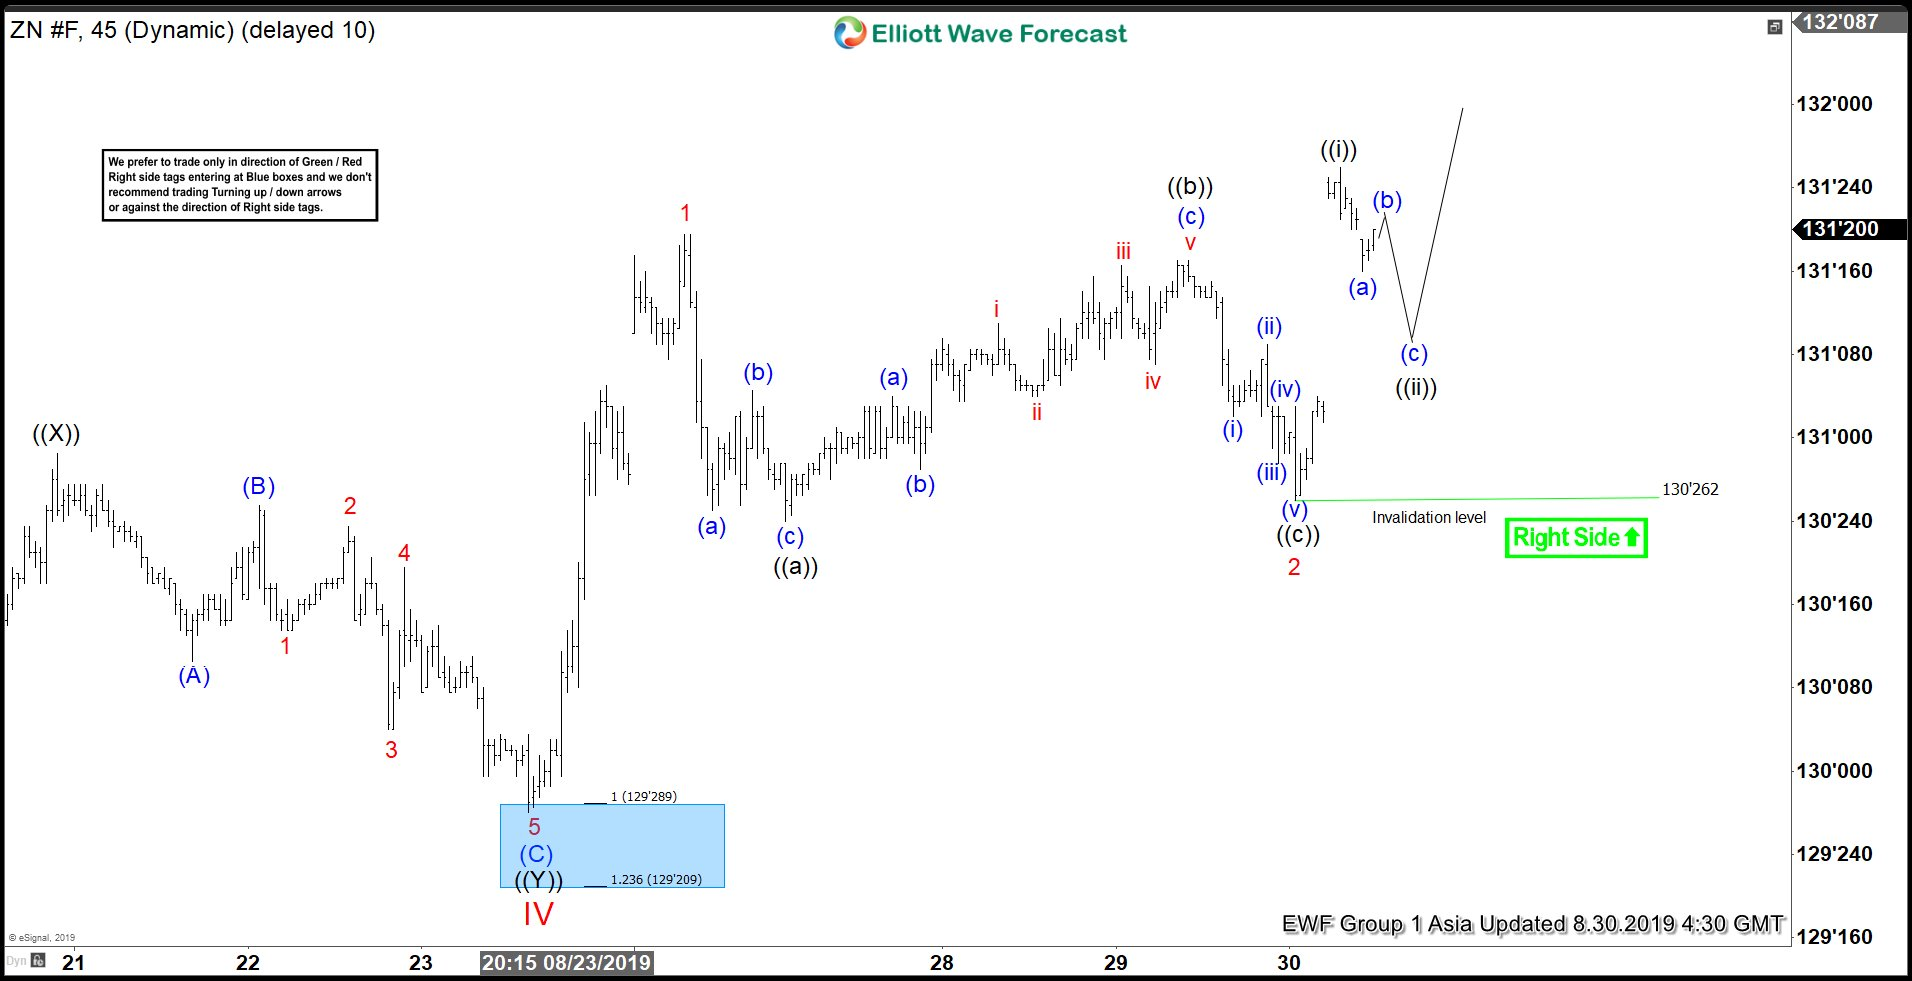 Elliott Wave View: Ten Year Notes (ZN_F) Resumes Higher